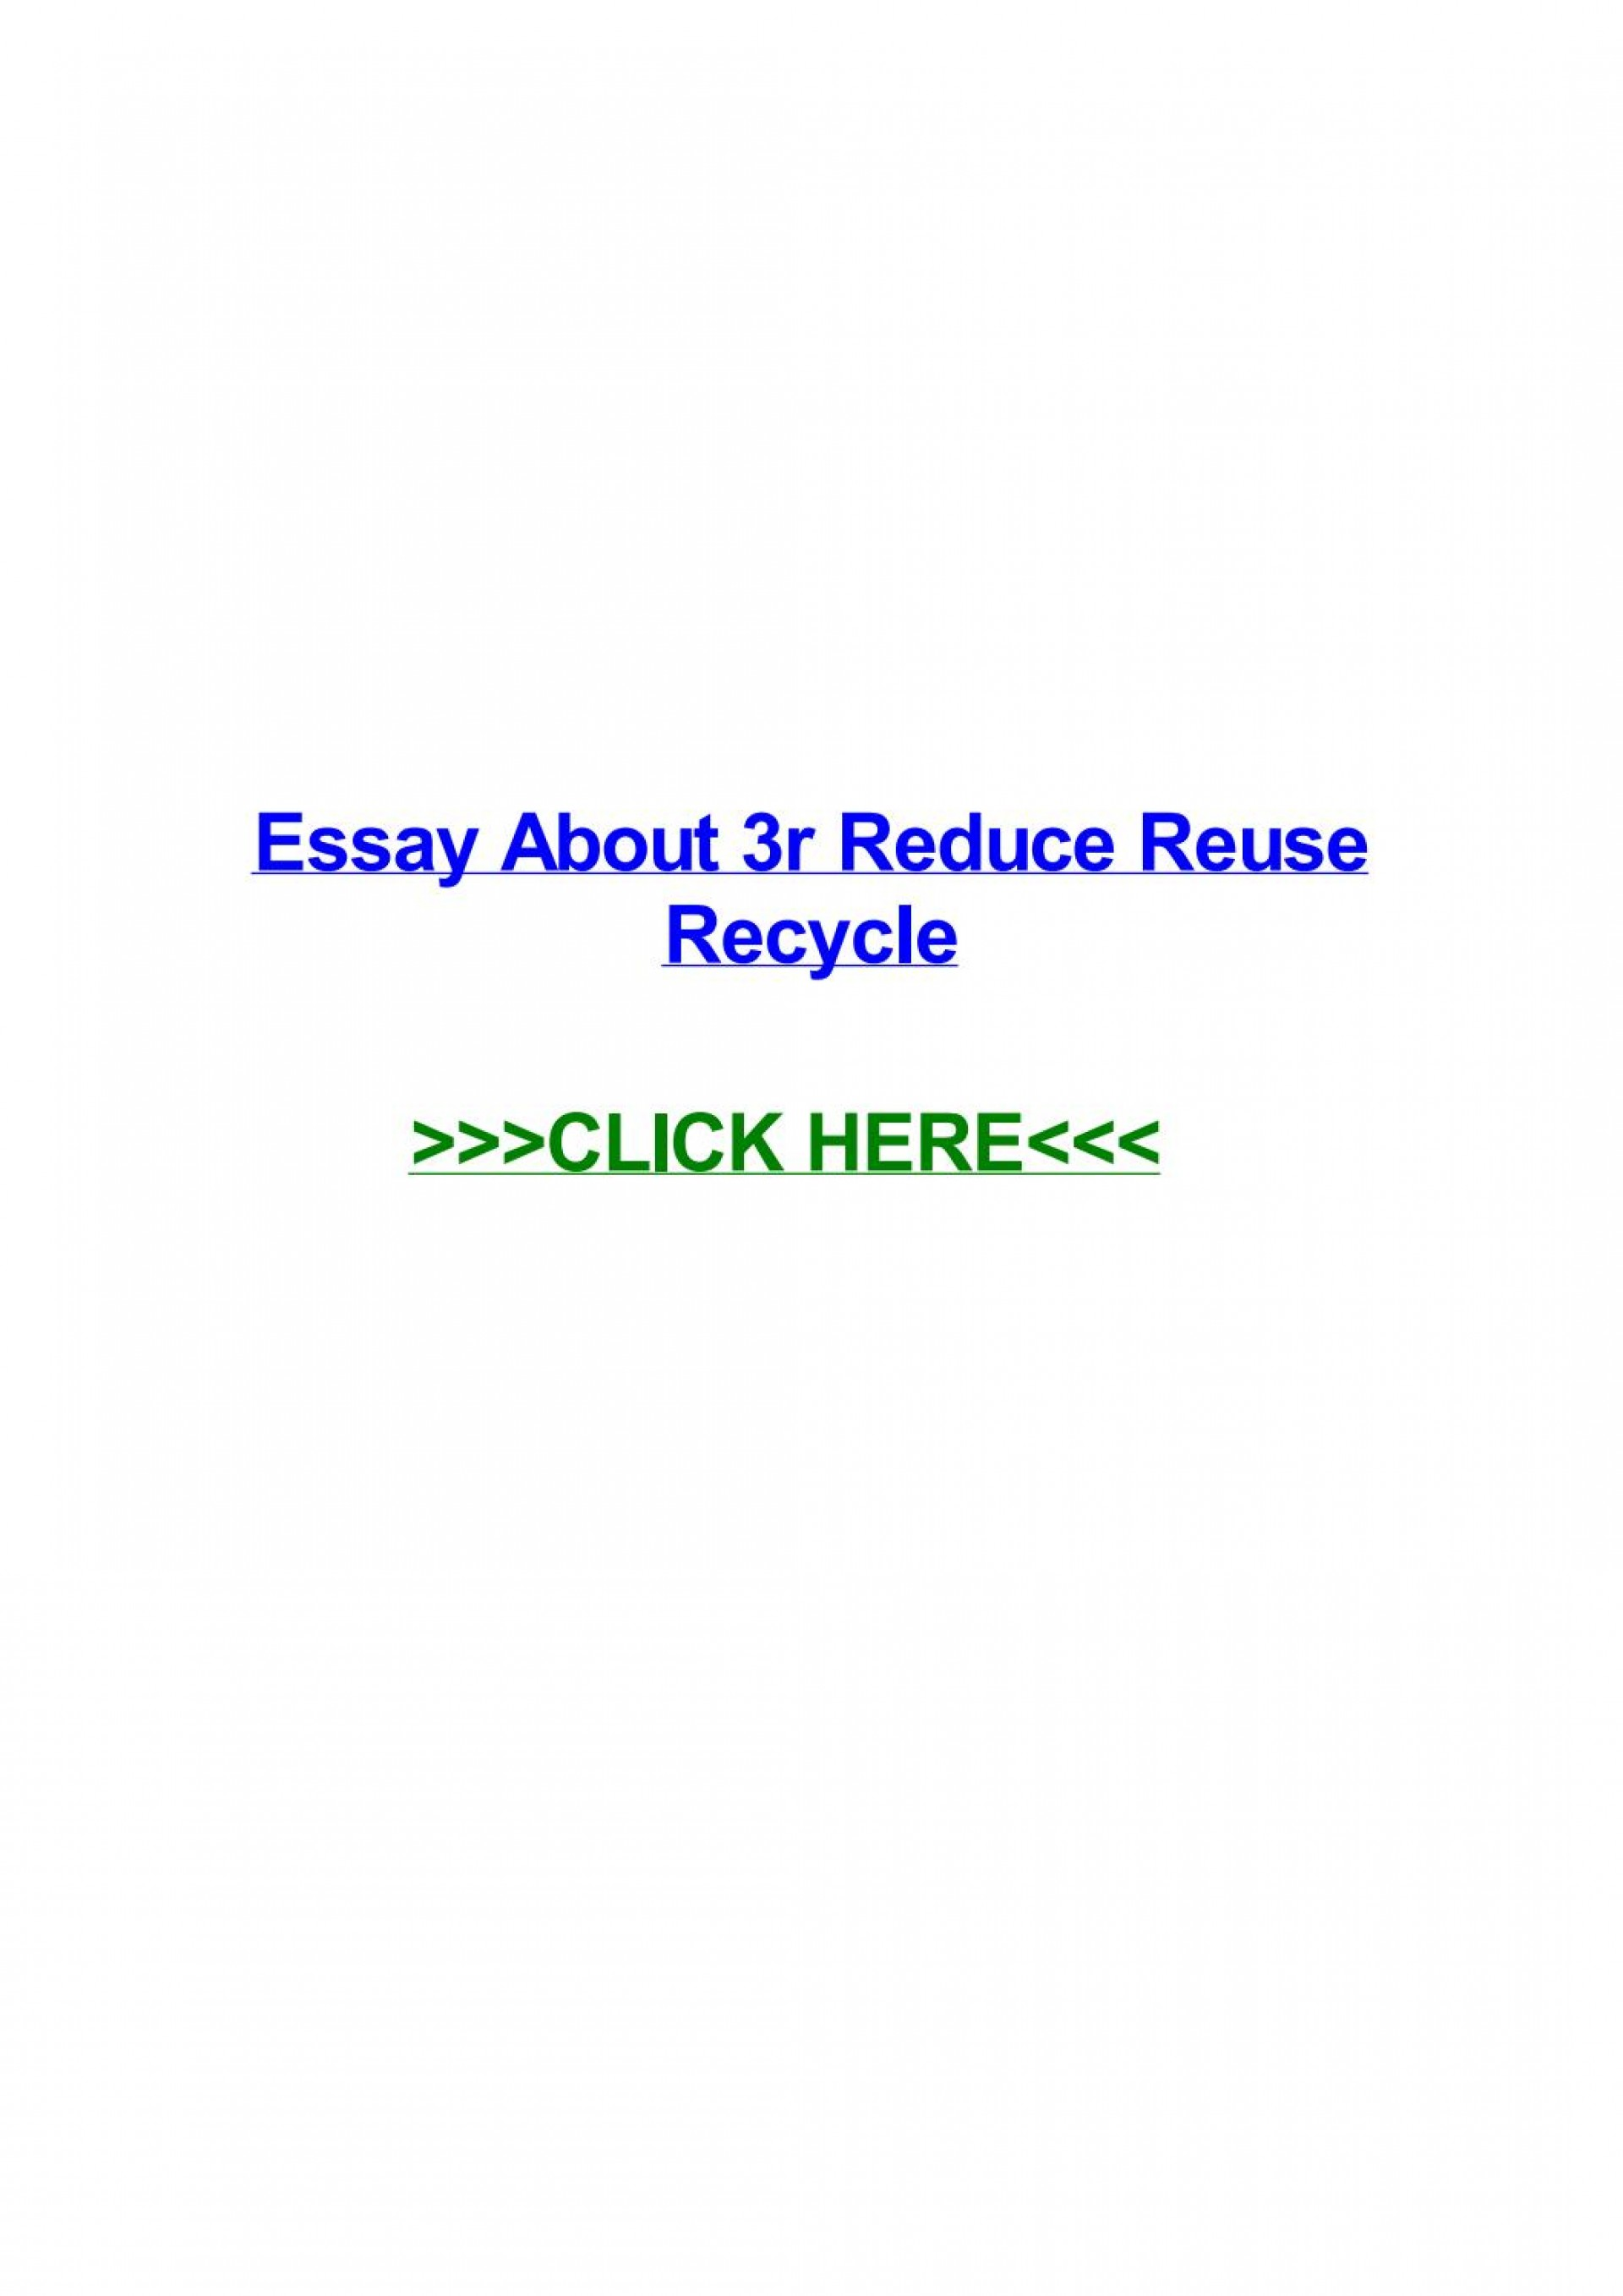 008 Essay On Reduce Reuse Recycle Example Page 1 Stirring Short In Hindi English 1920